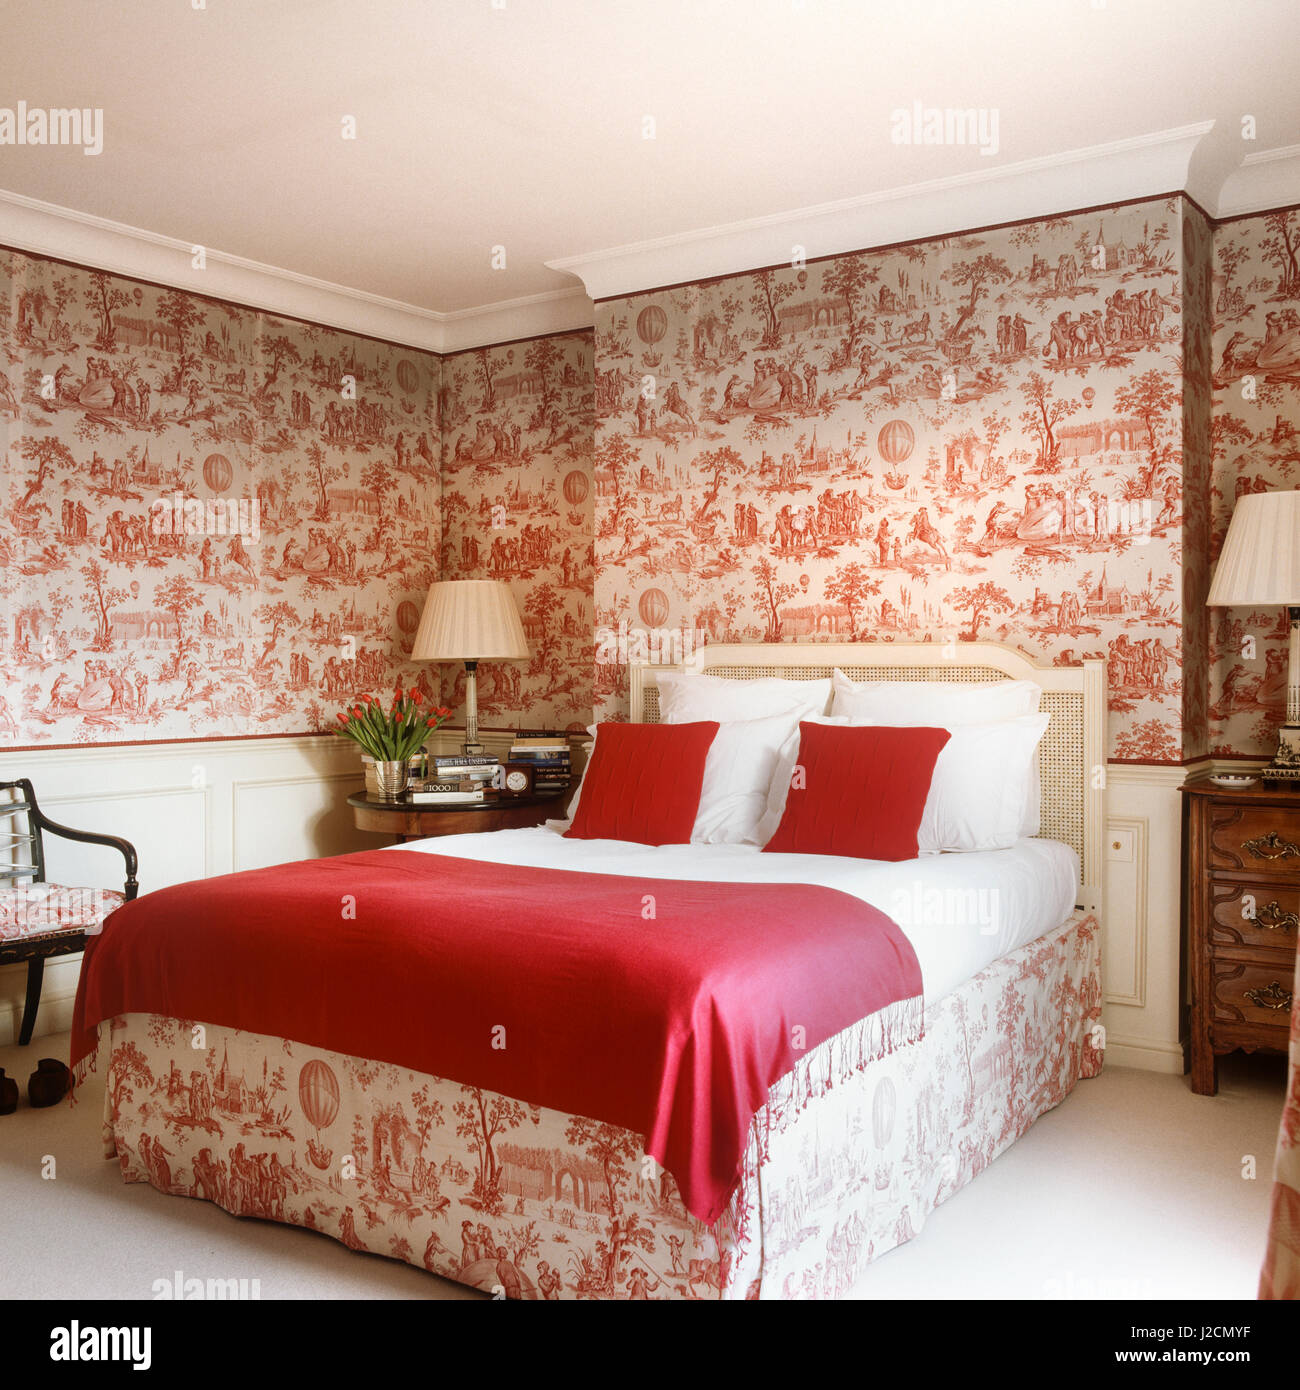 Red And White Themed Bedroom Stock Photo Alamy